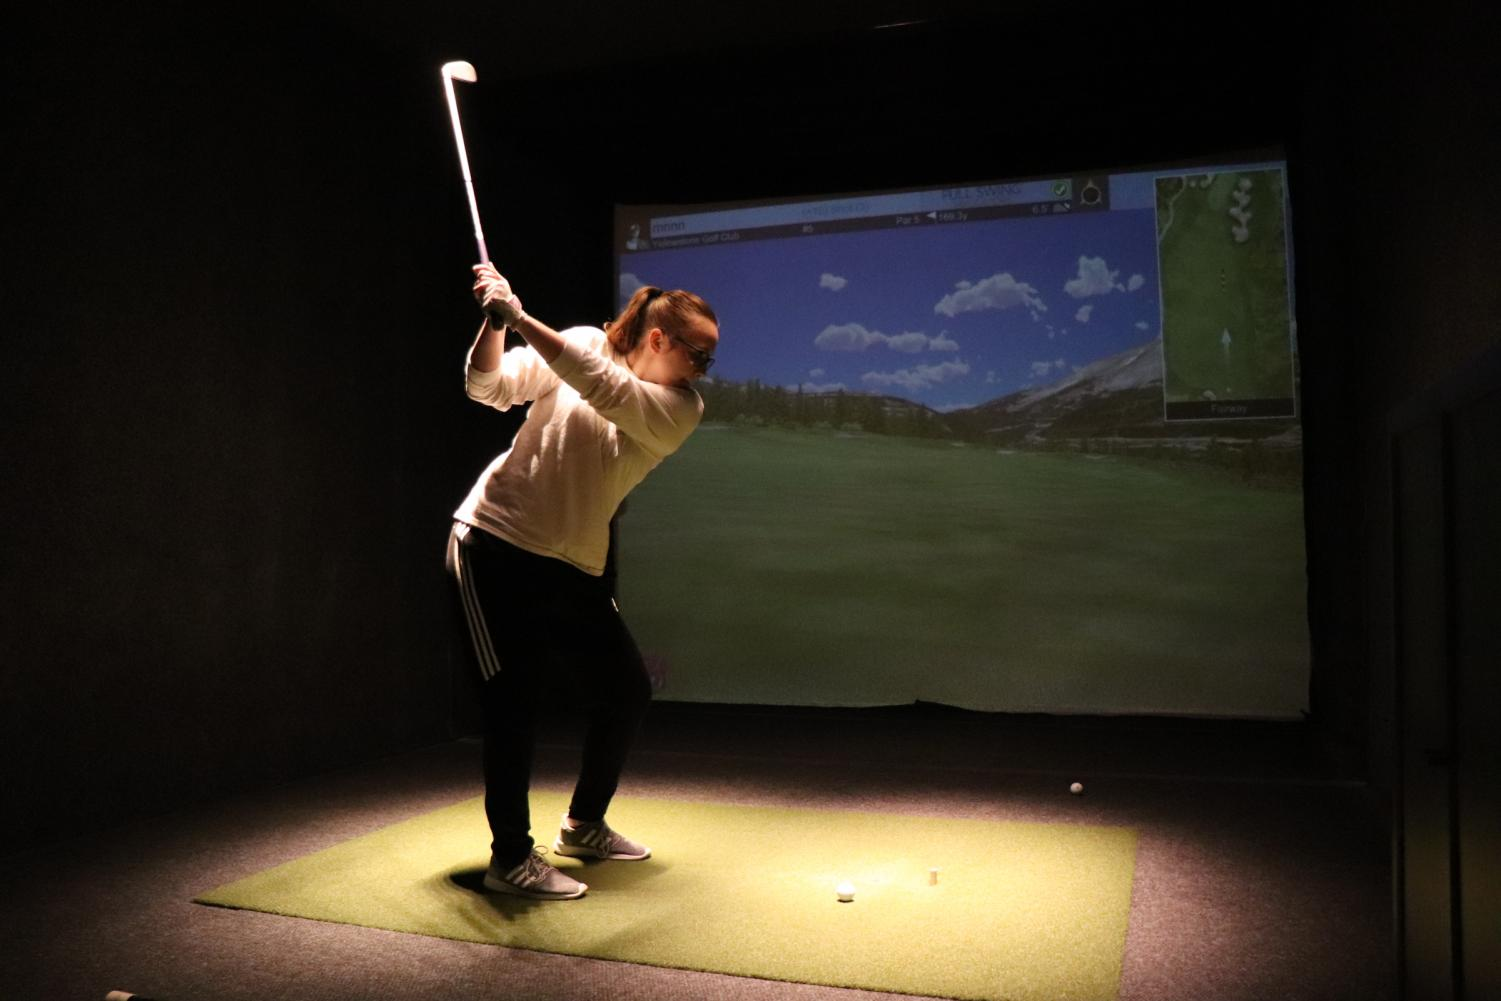 Girls' golf captain senior Carly Livingston practices her swing indoors at the Life Time Fitness in Park. The teams has been practicing indoors due to the cold weather.